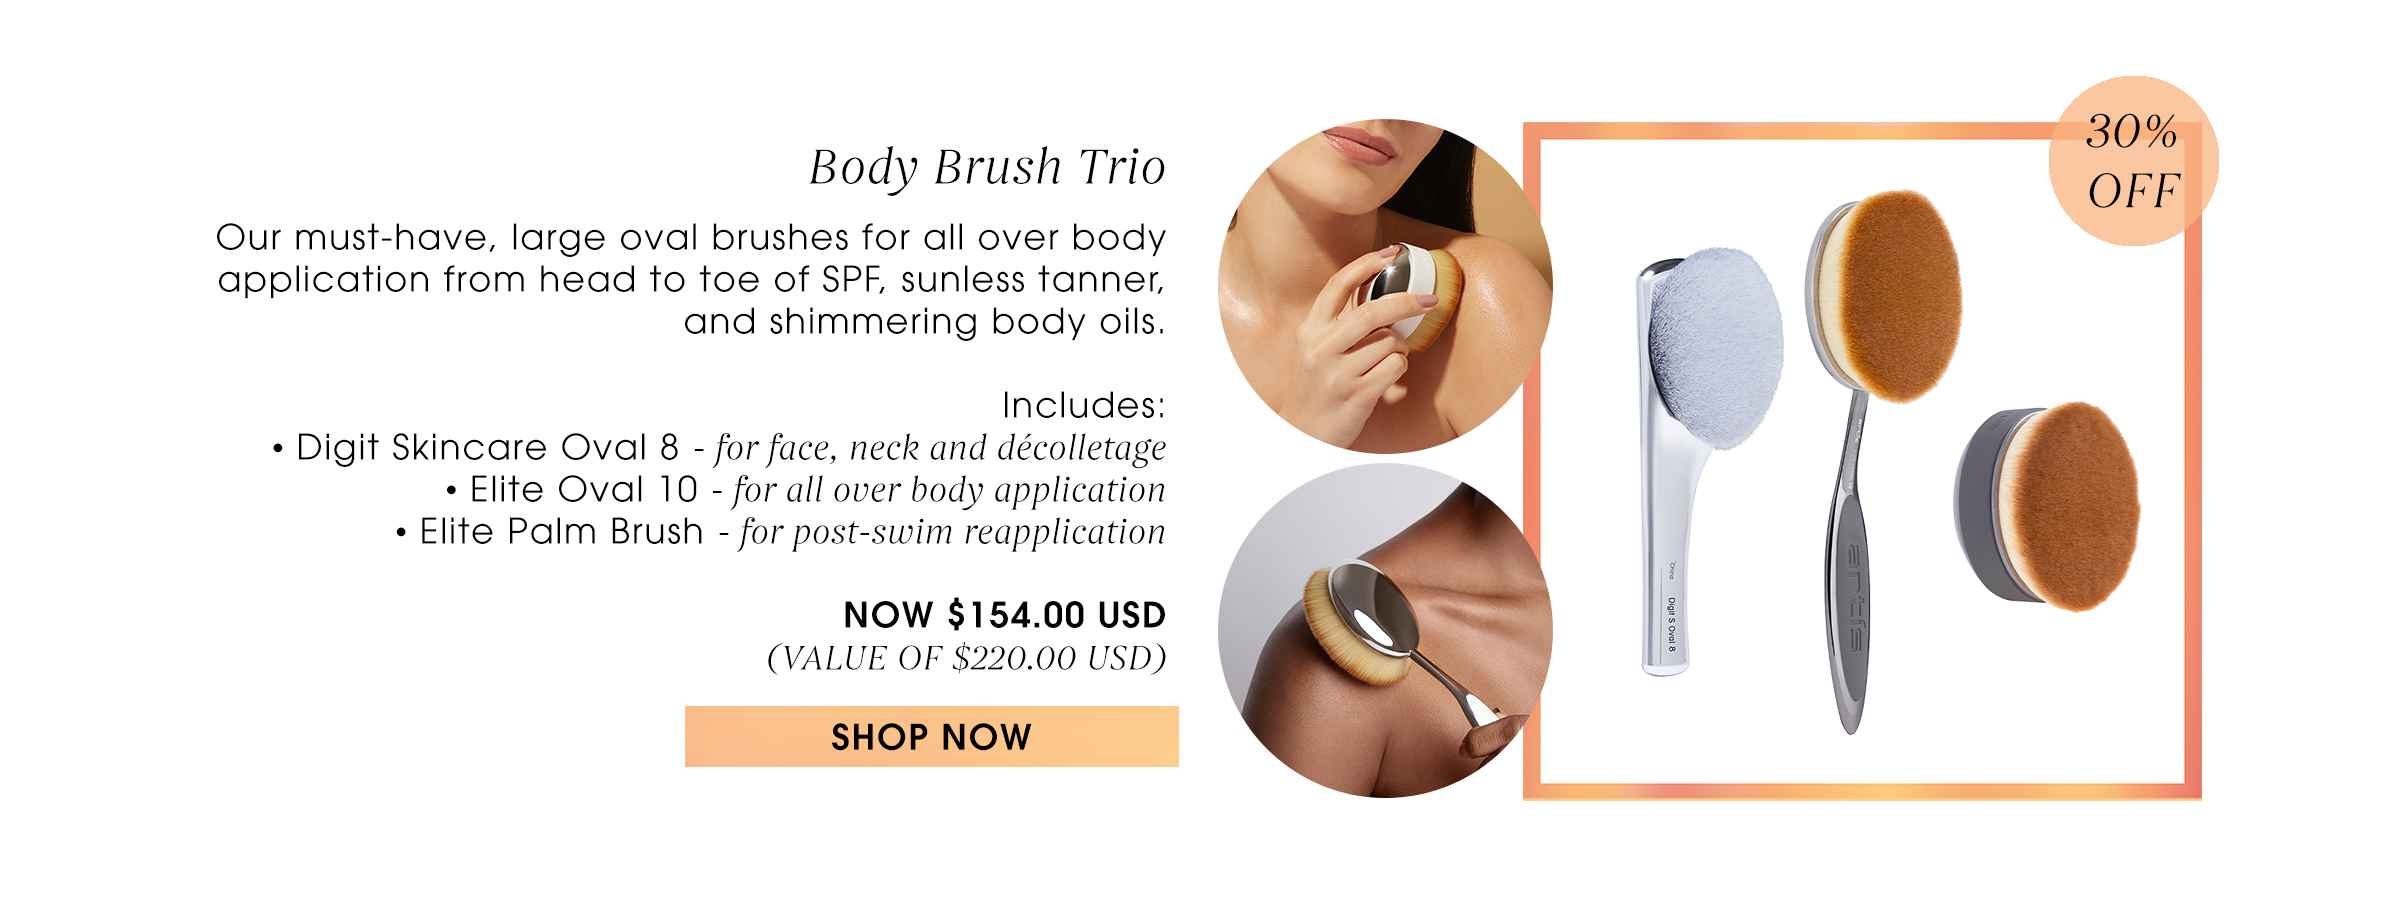 Body Brush Trio   Our must-have, large oval brushes for all over body application from head to toe of SPF, sunless tanner, and shimmering body oils.  Includes: • Digit Skincare Oval 8 - for face, neck and décolletage • Elite Oval 10 - for all over body application • Elite Palm Brush - for post-swim reapplication  NOW $154.00 USD (VALUE OF $220.00 USD) Shop now.